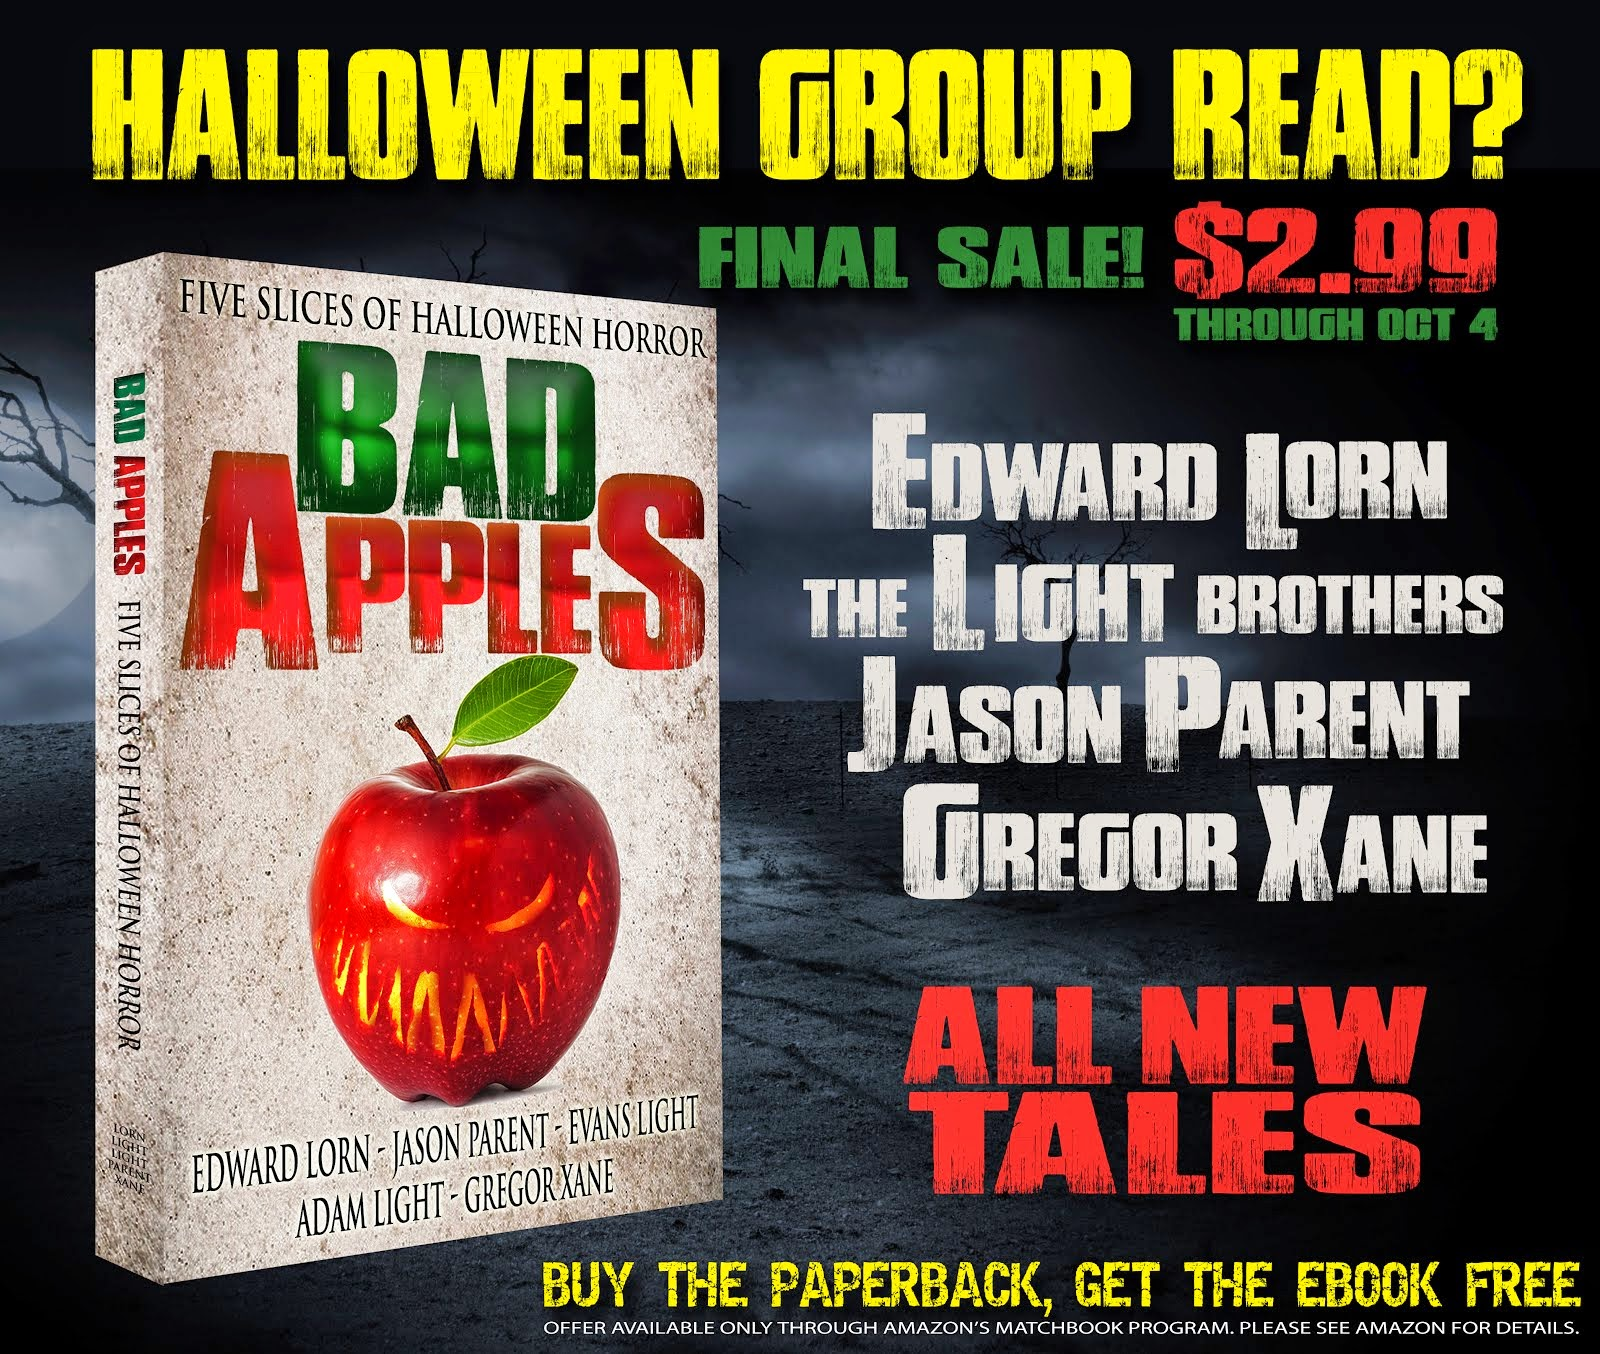 Bad Apples: Final Sale - $2.99 through October 4th, 2014